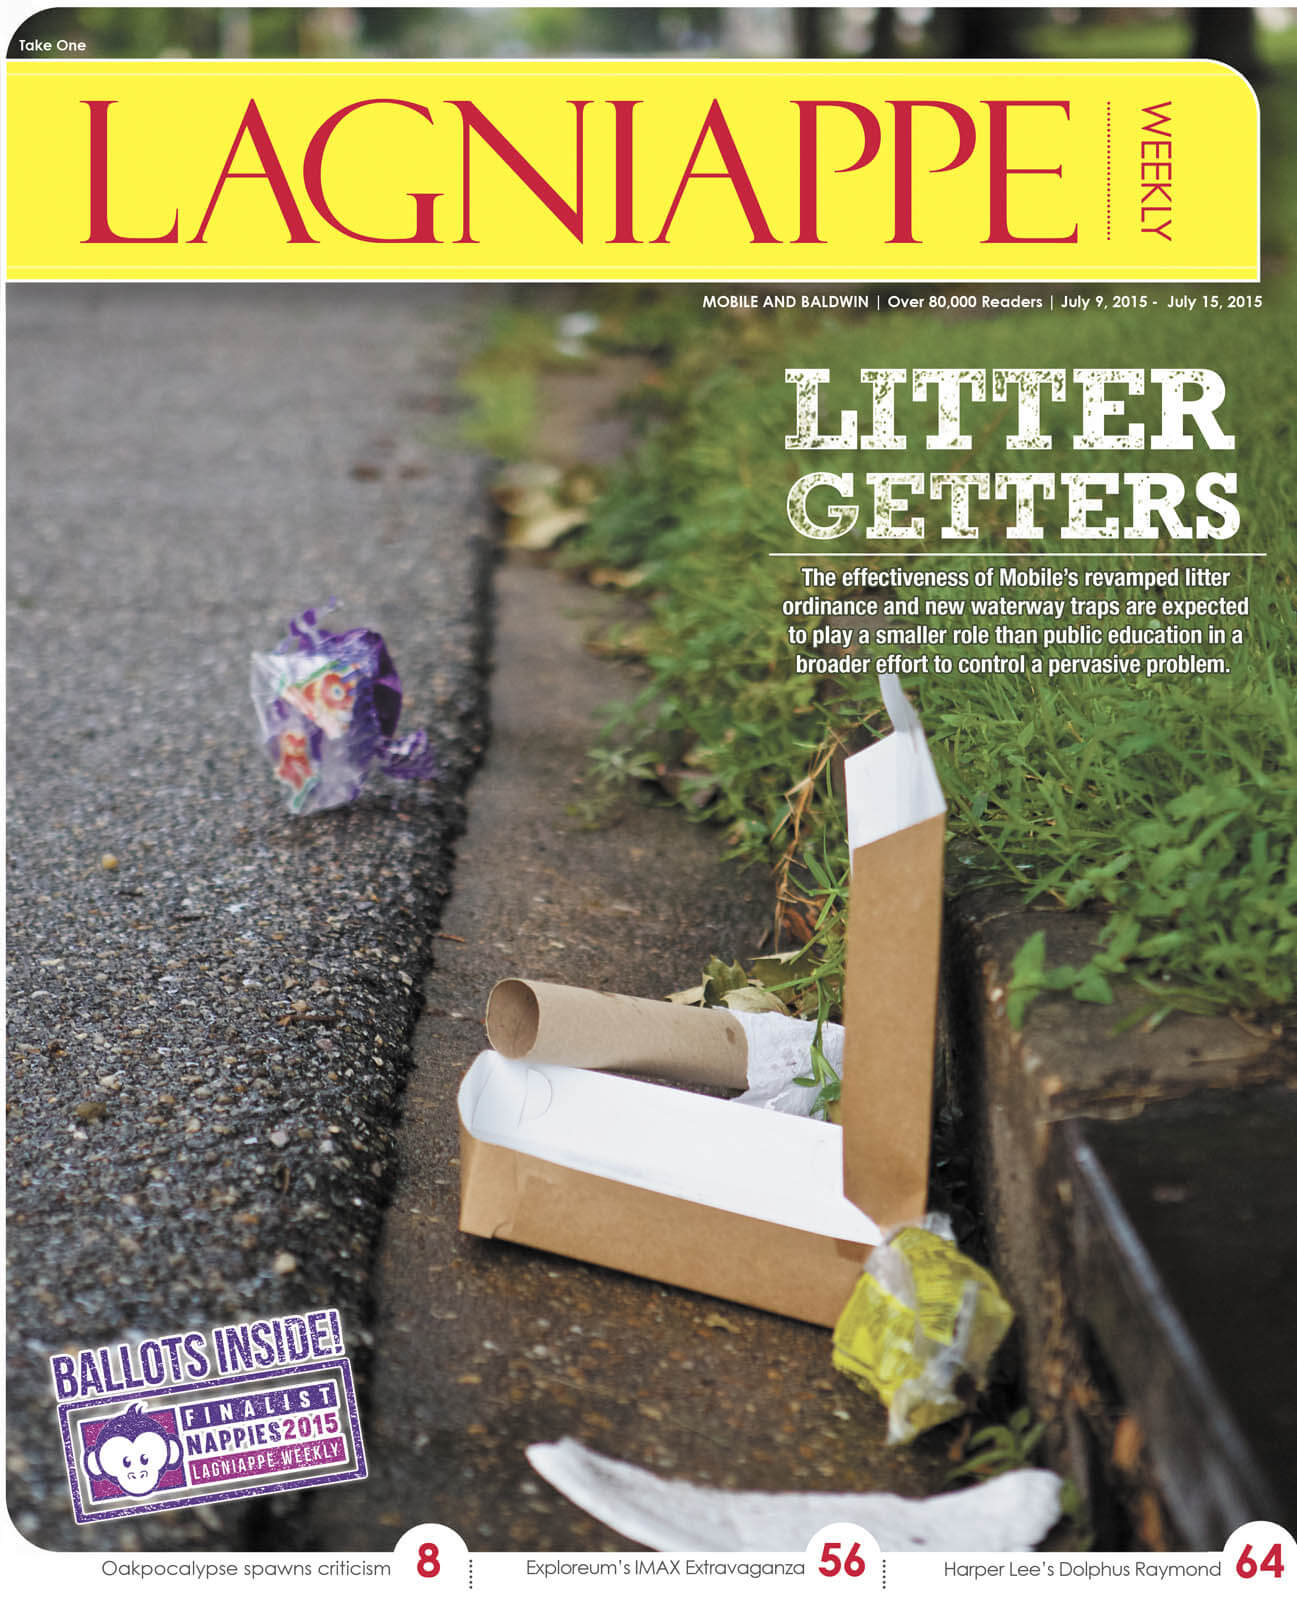 COVER STORY: Enforcement questioned as litter continues to flow through city